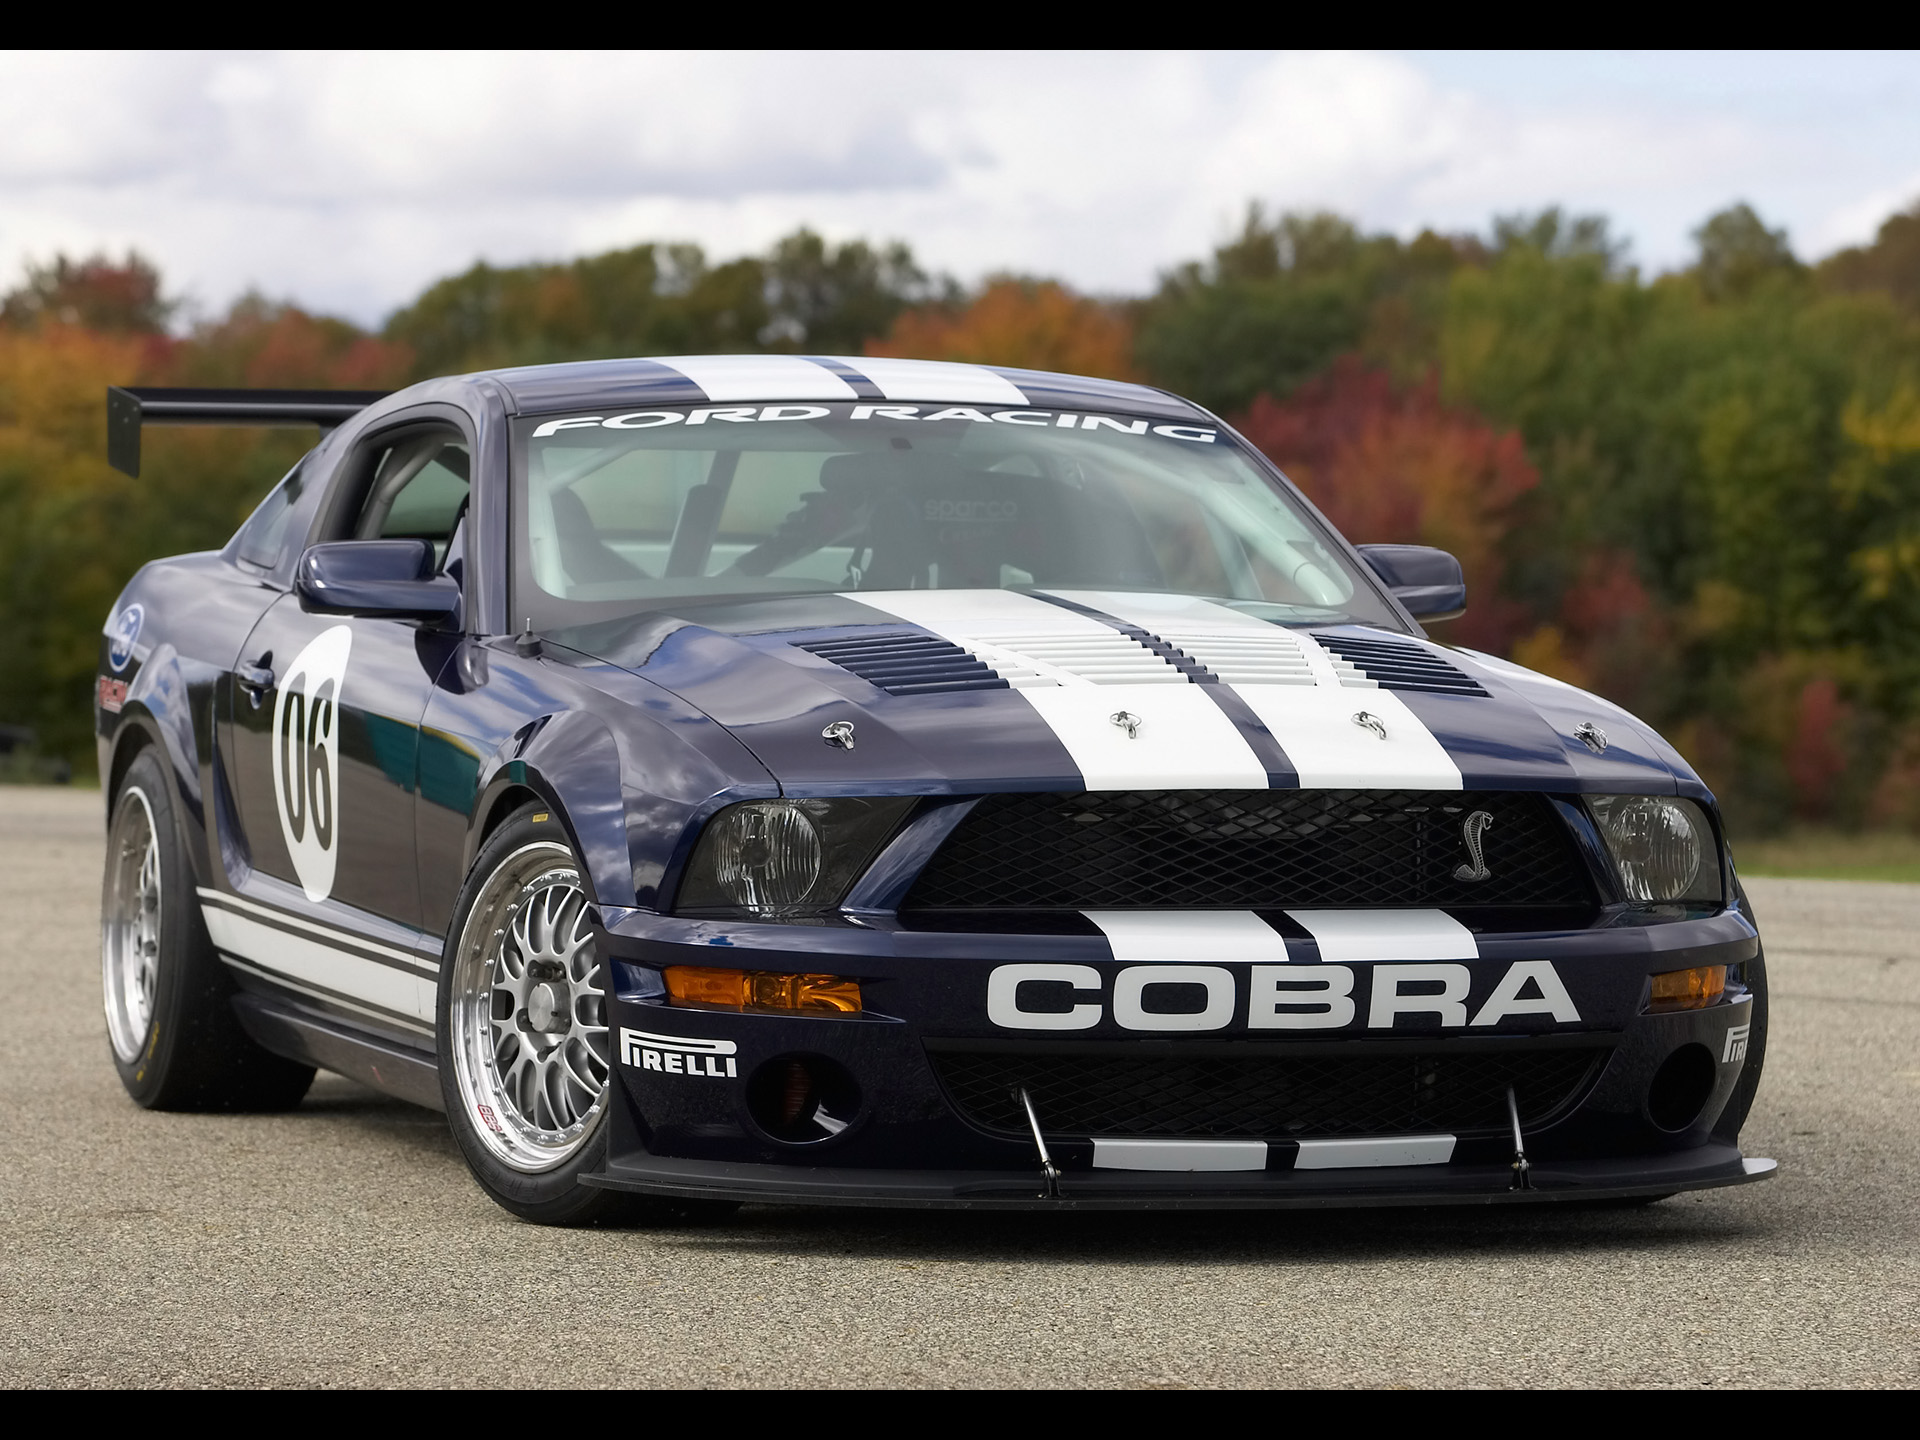 2018 Ford Mustang Cobra Racecar photo - 5